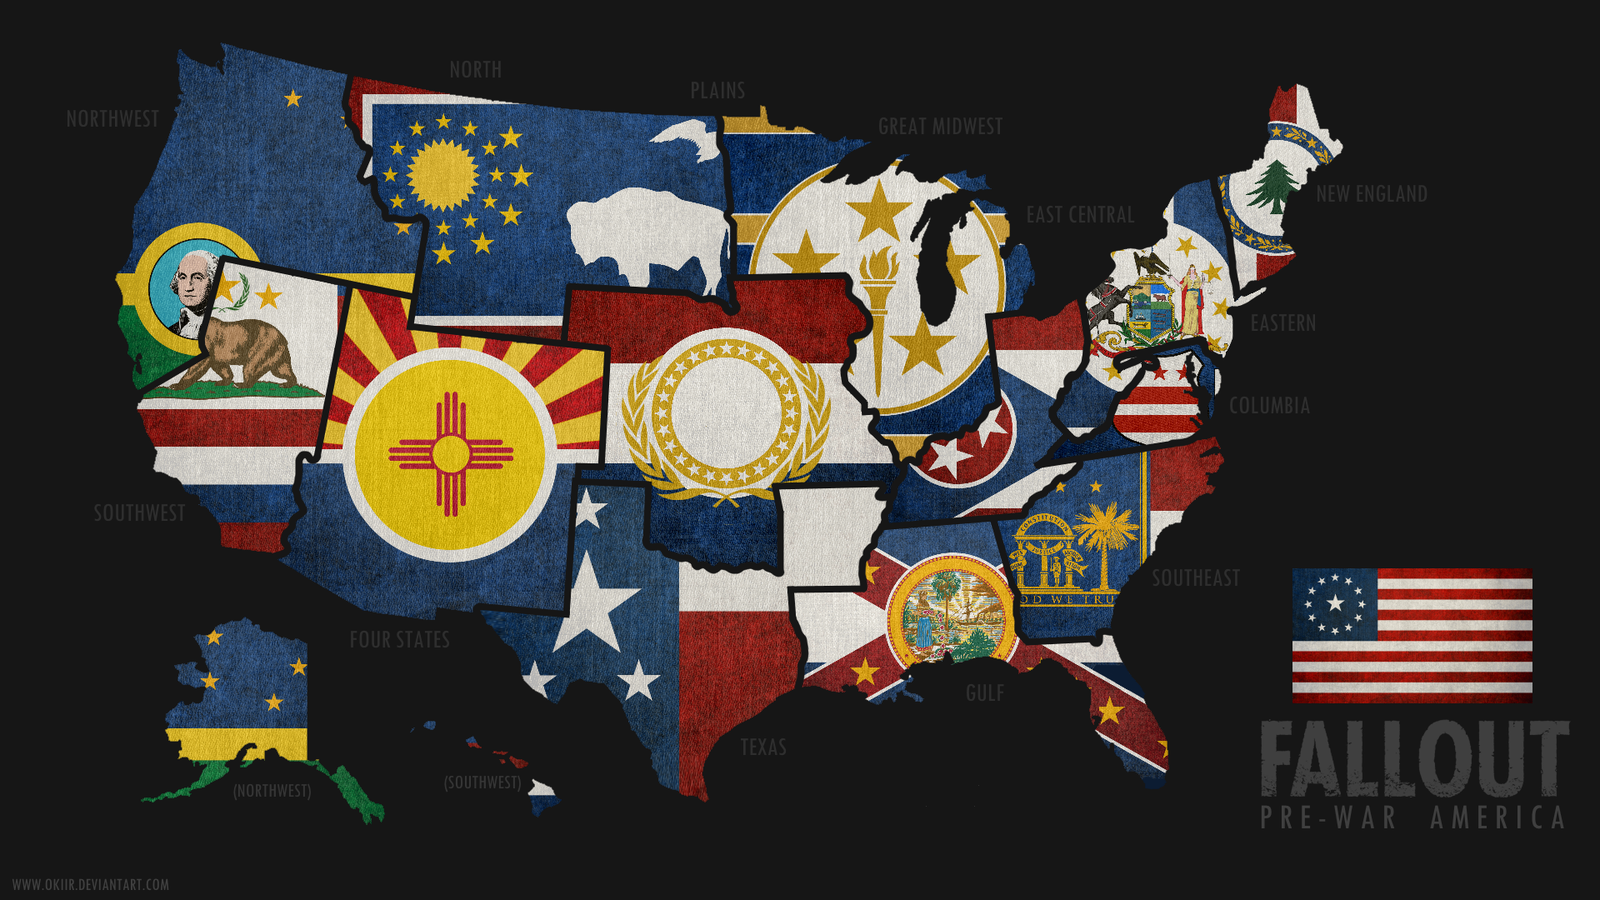 FALLOUT Map Of PreWar America By Okiir And Now For Something - Fallout game map of us